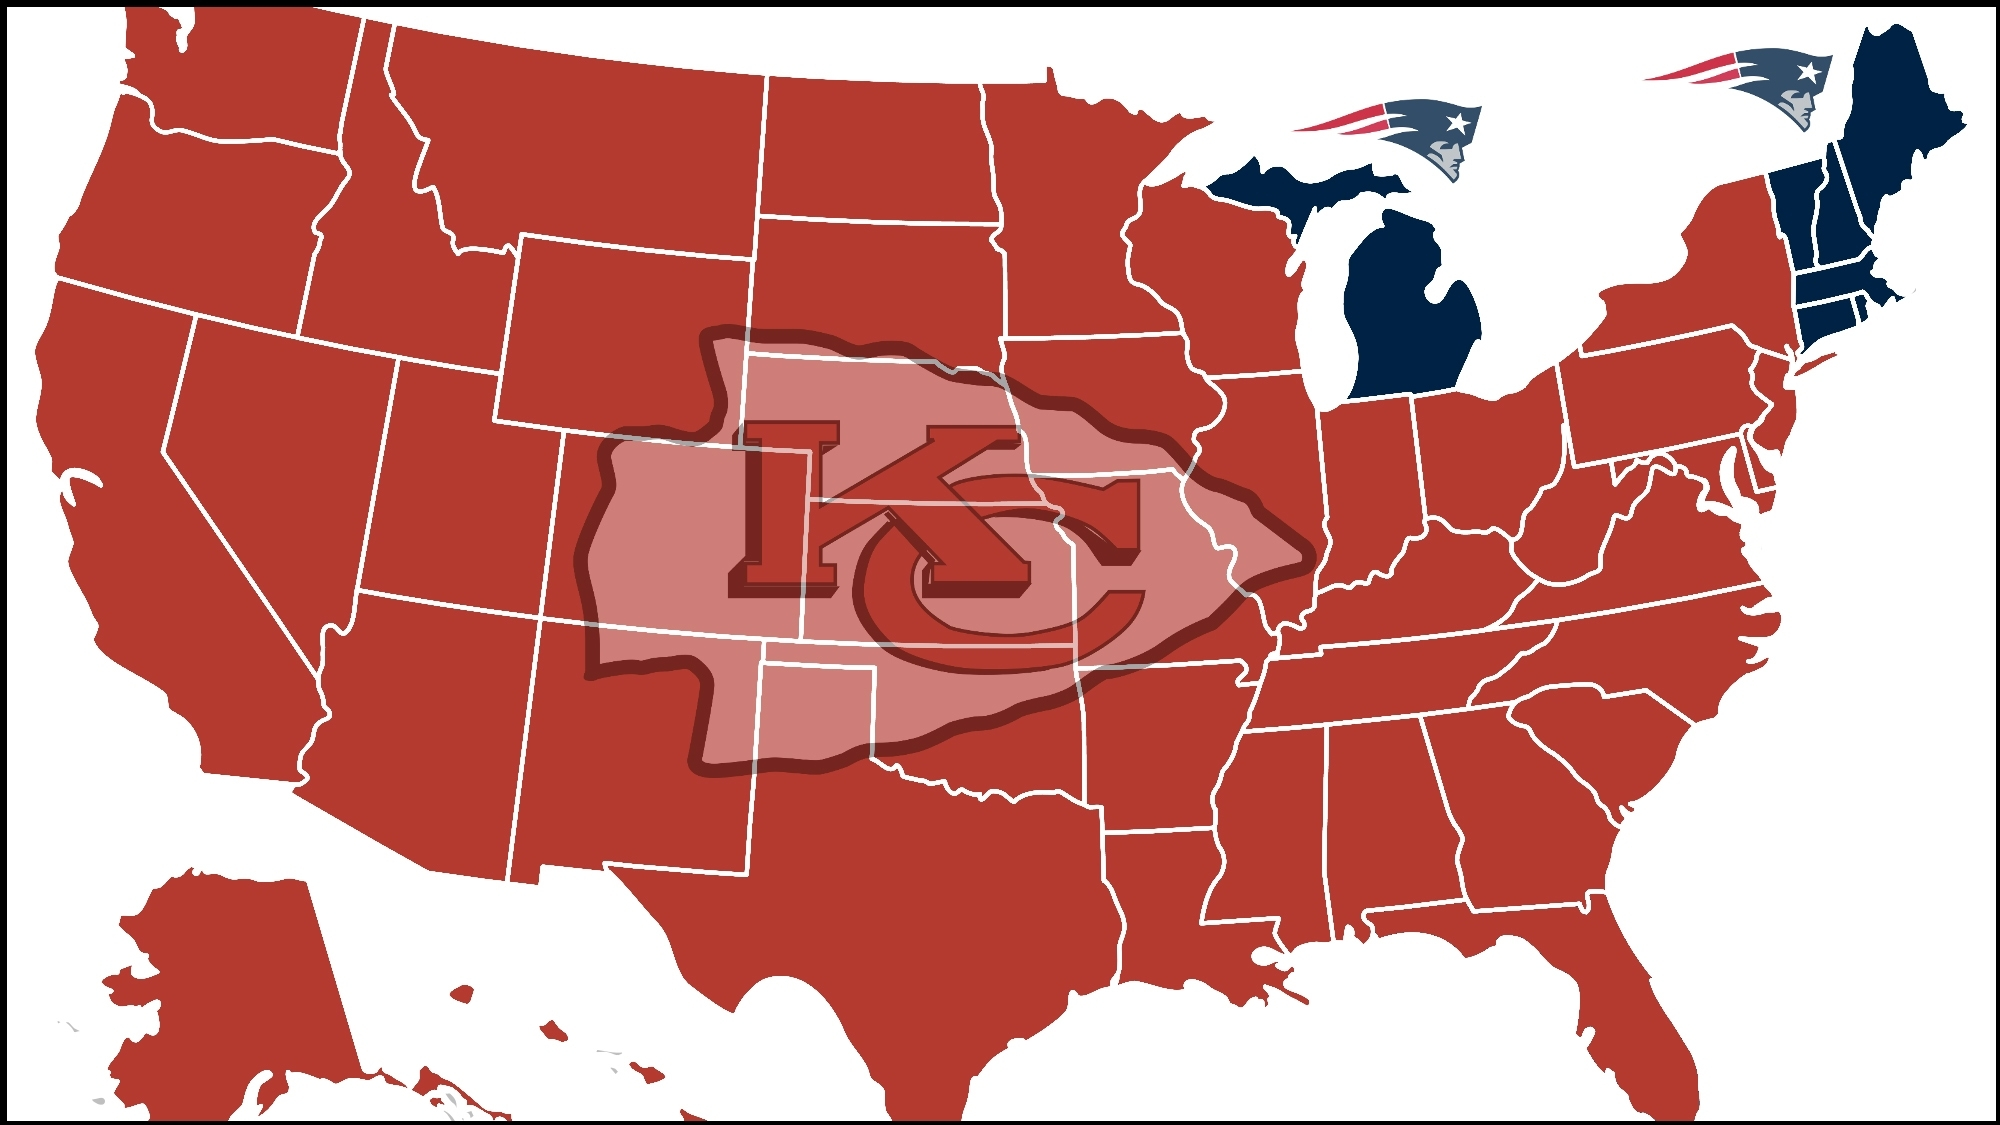 Almost Entire Country Will Be Rooting Against Patriots In throughout Map Of Who Is Rooting For Super Bowl 2019